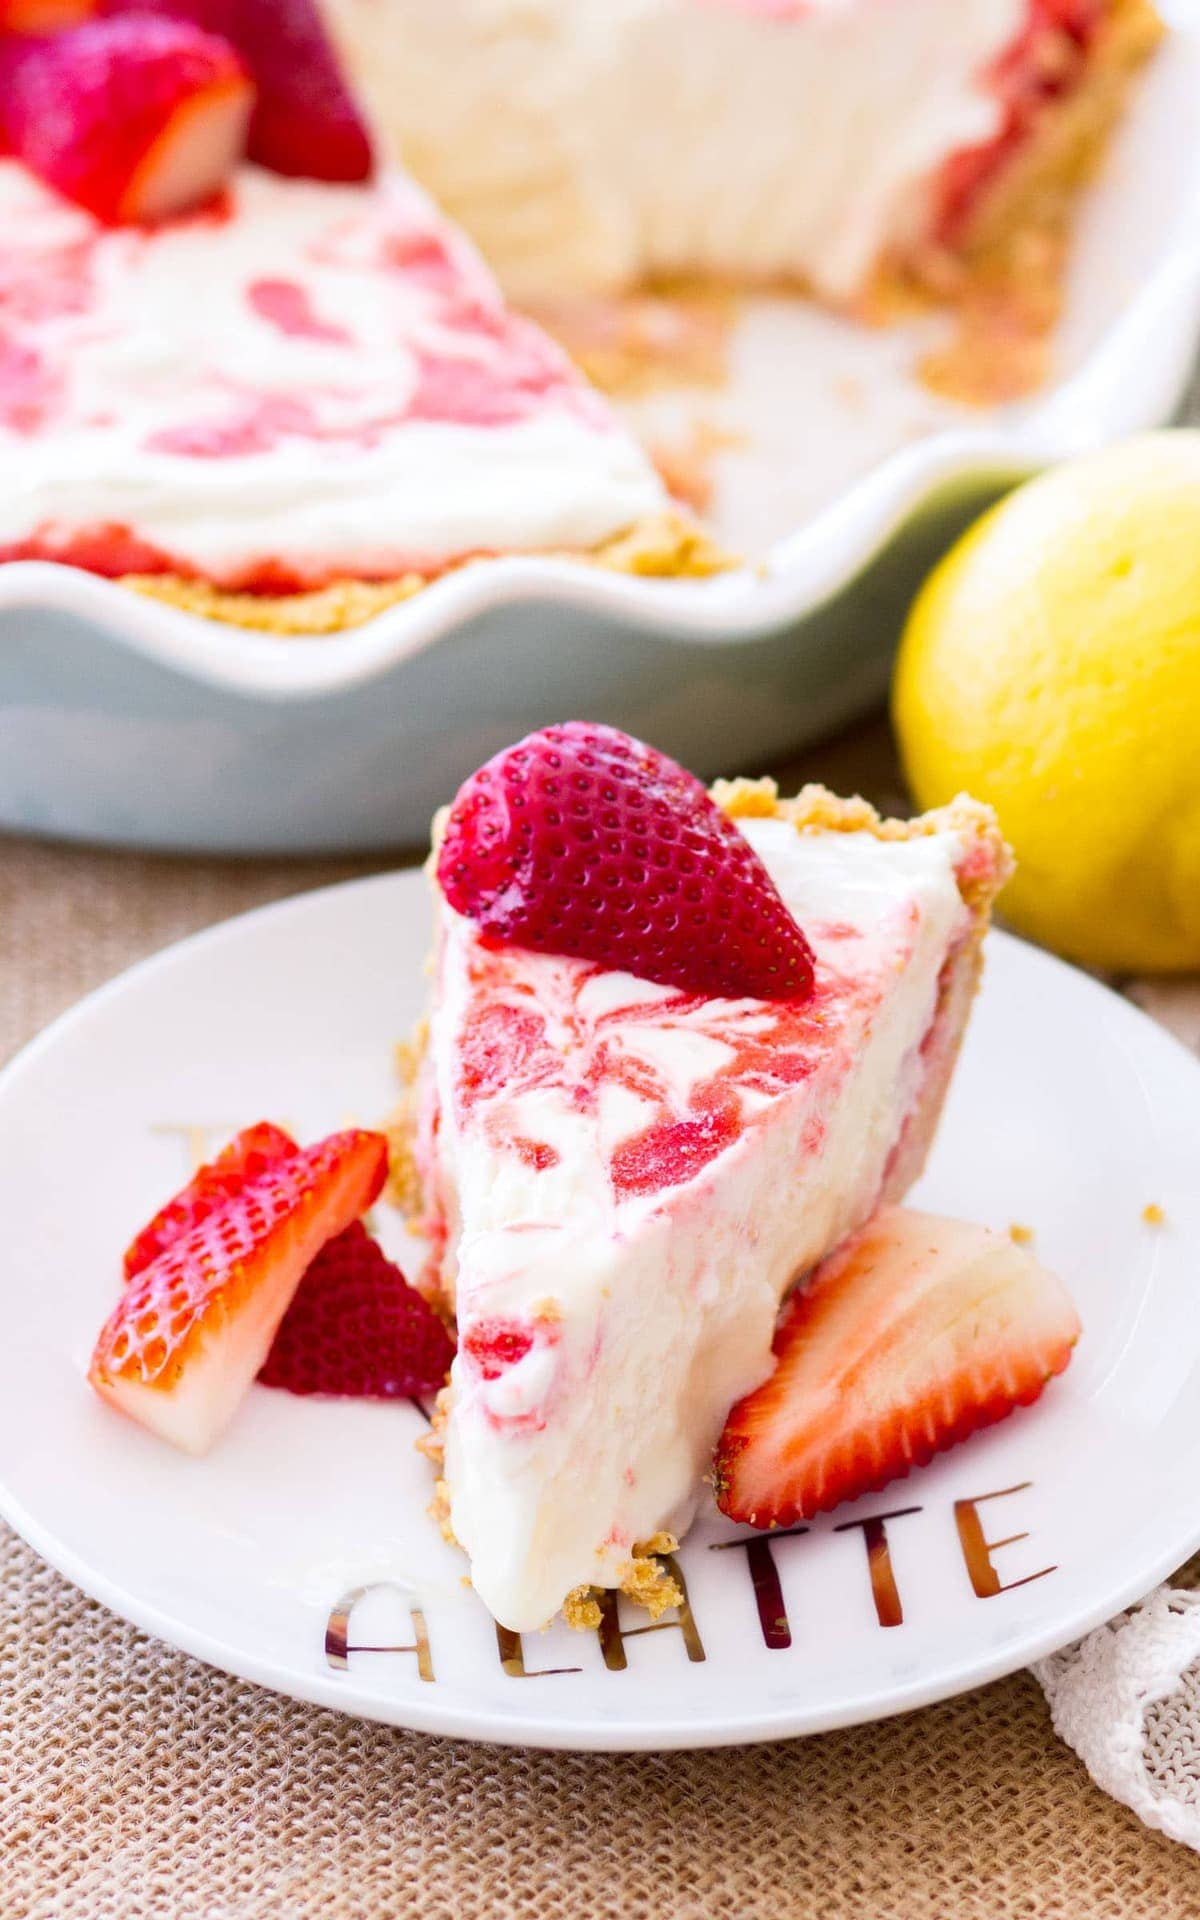 A slice of Strawberry Lemonade Pie on a white plate. The rest of the Strawberry lemonade icebox pie is just behind the slice waiting to be served.